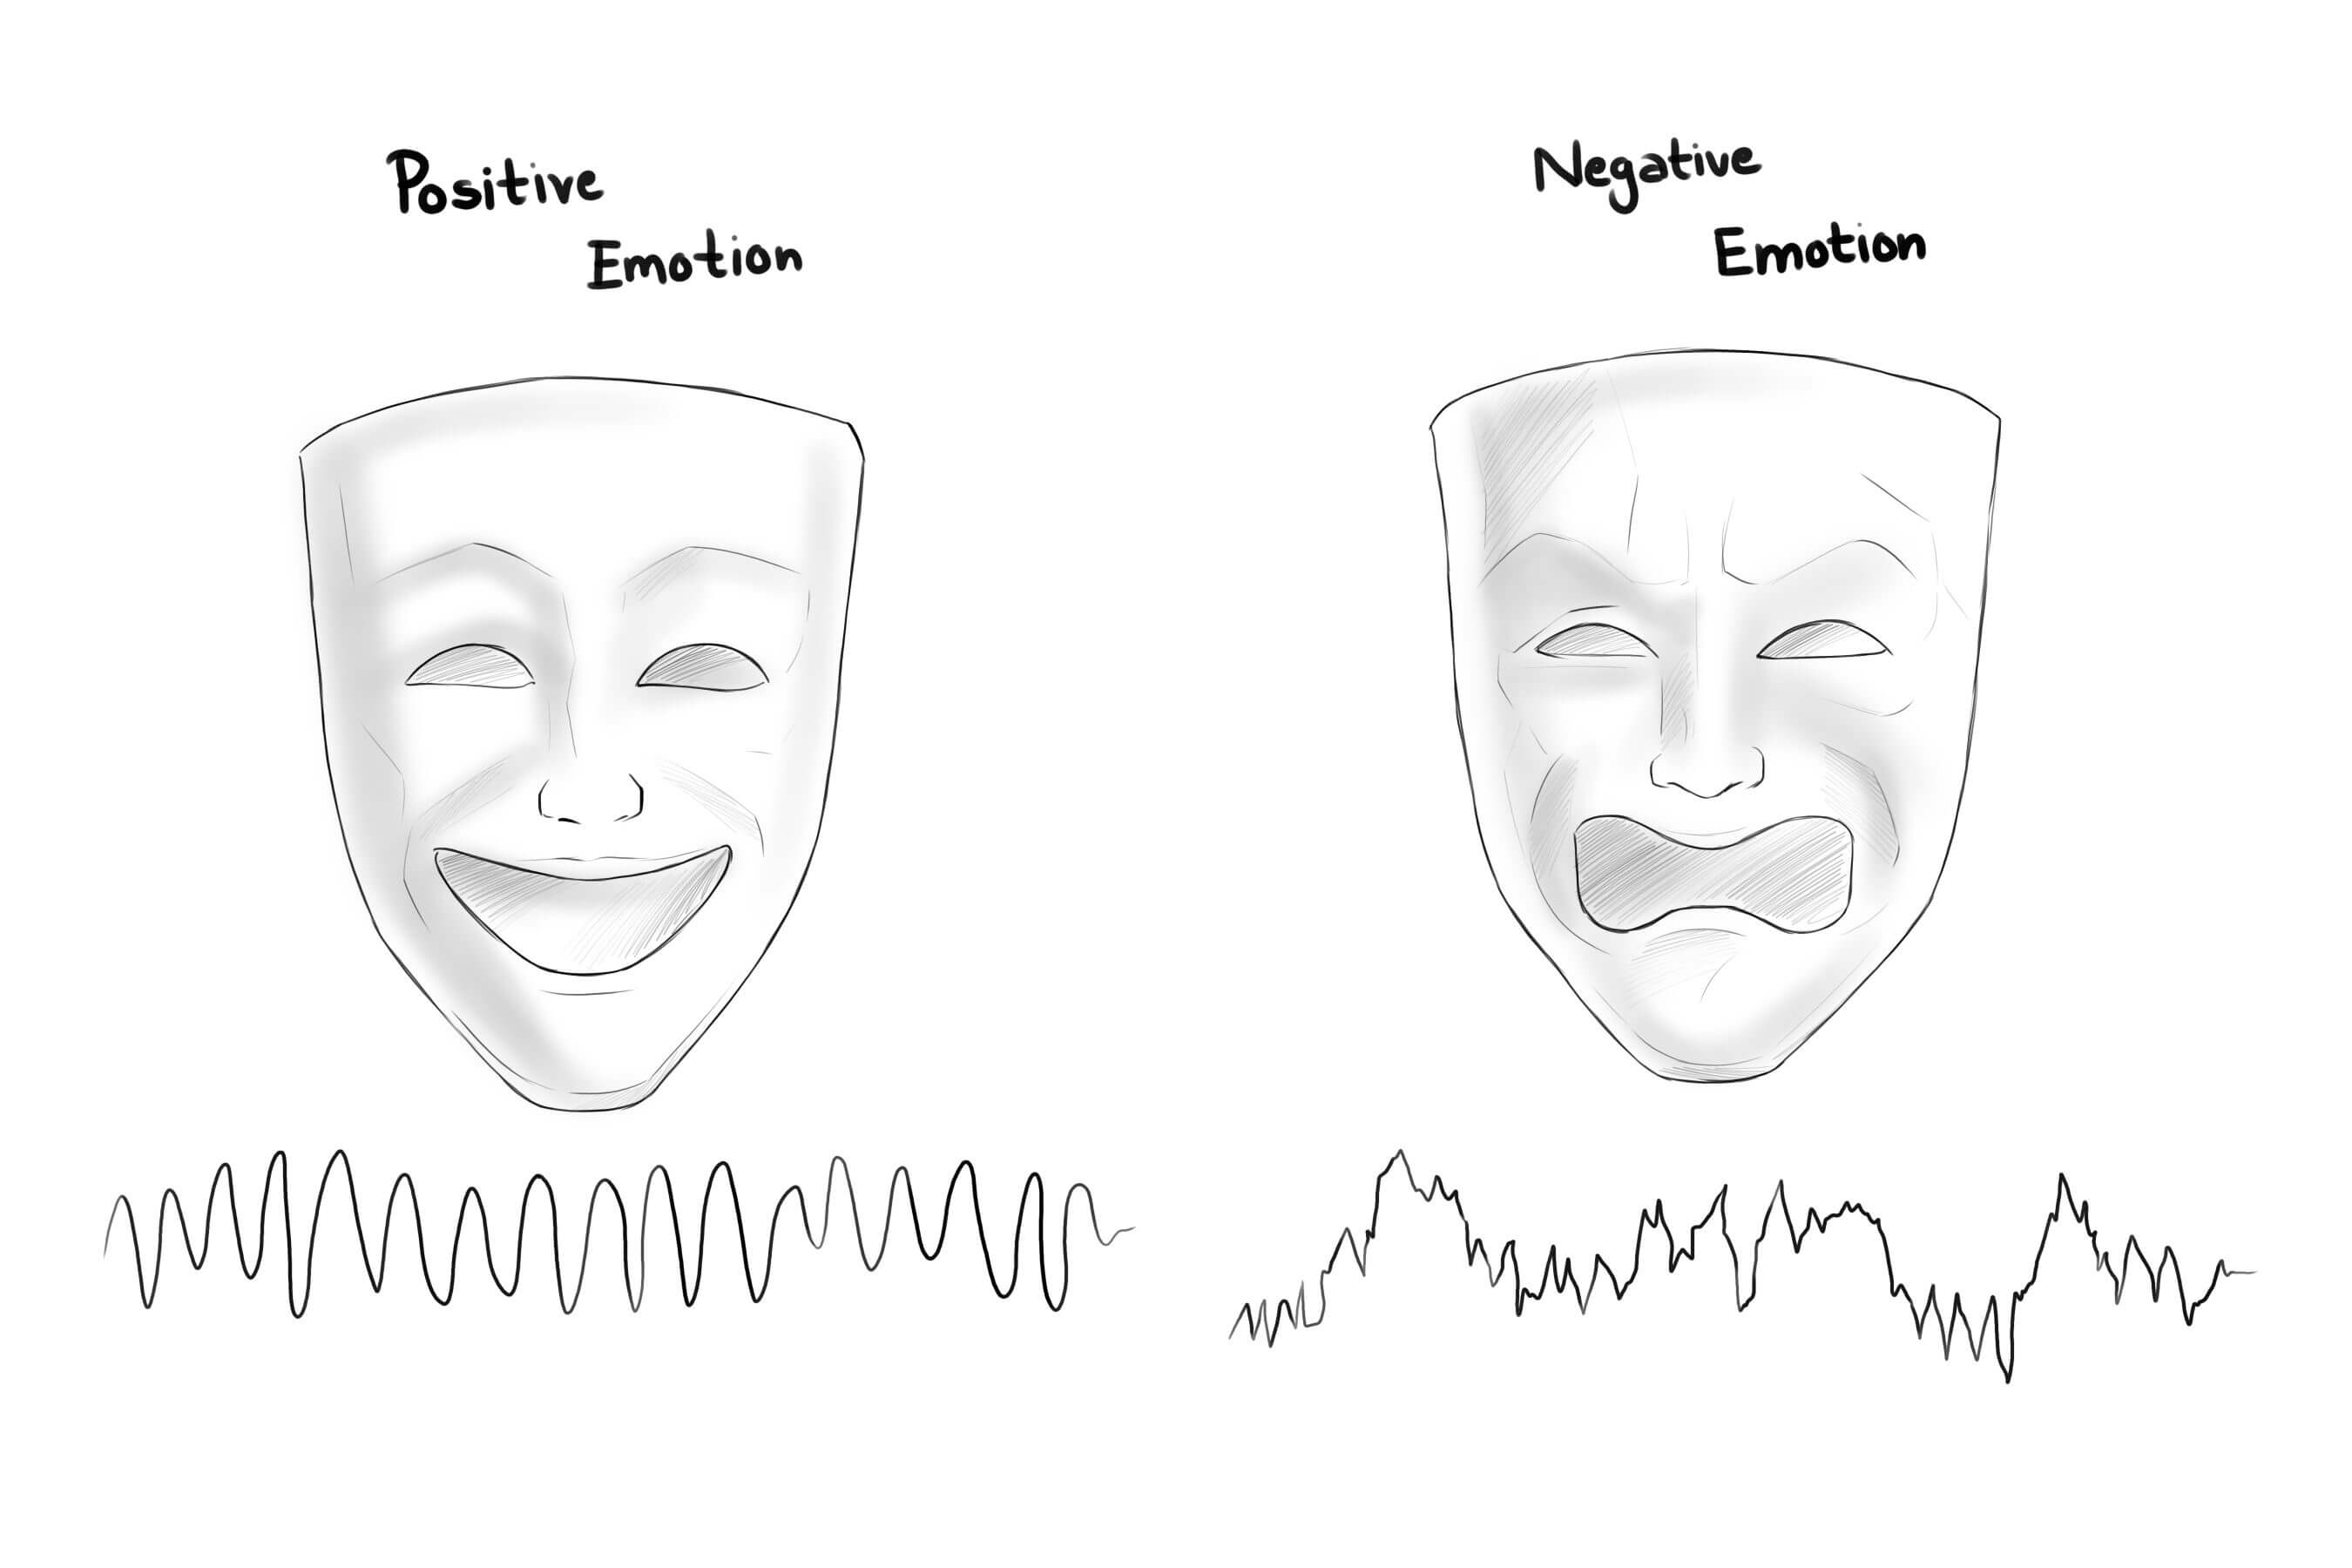 POSITIVE V. NEGATIVE EMOTIONS/SMOOTH V. JAGGED WAVE